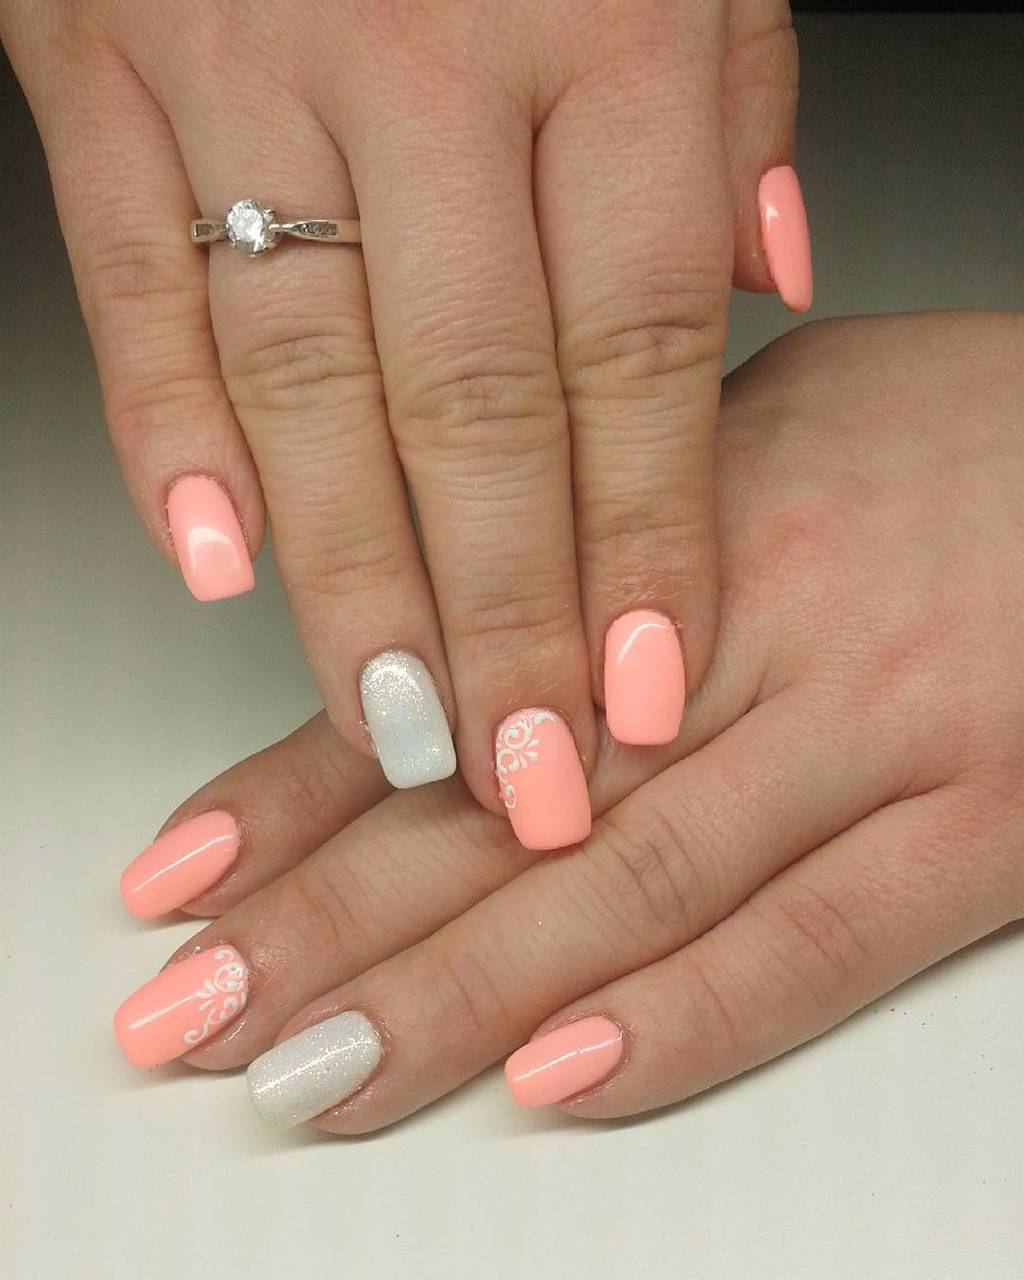 Classy Peach Nail Designs - 20 Stylish Peach Nail Designs For Christmas Eve – NailDesignCode